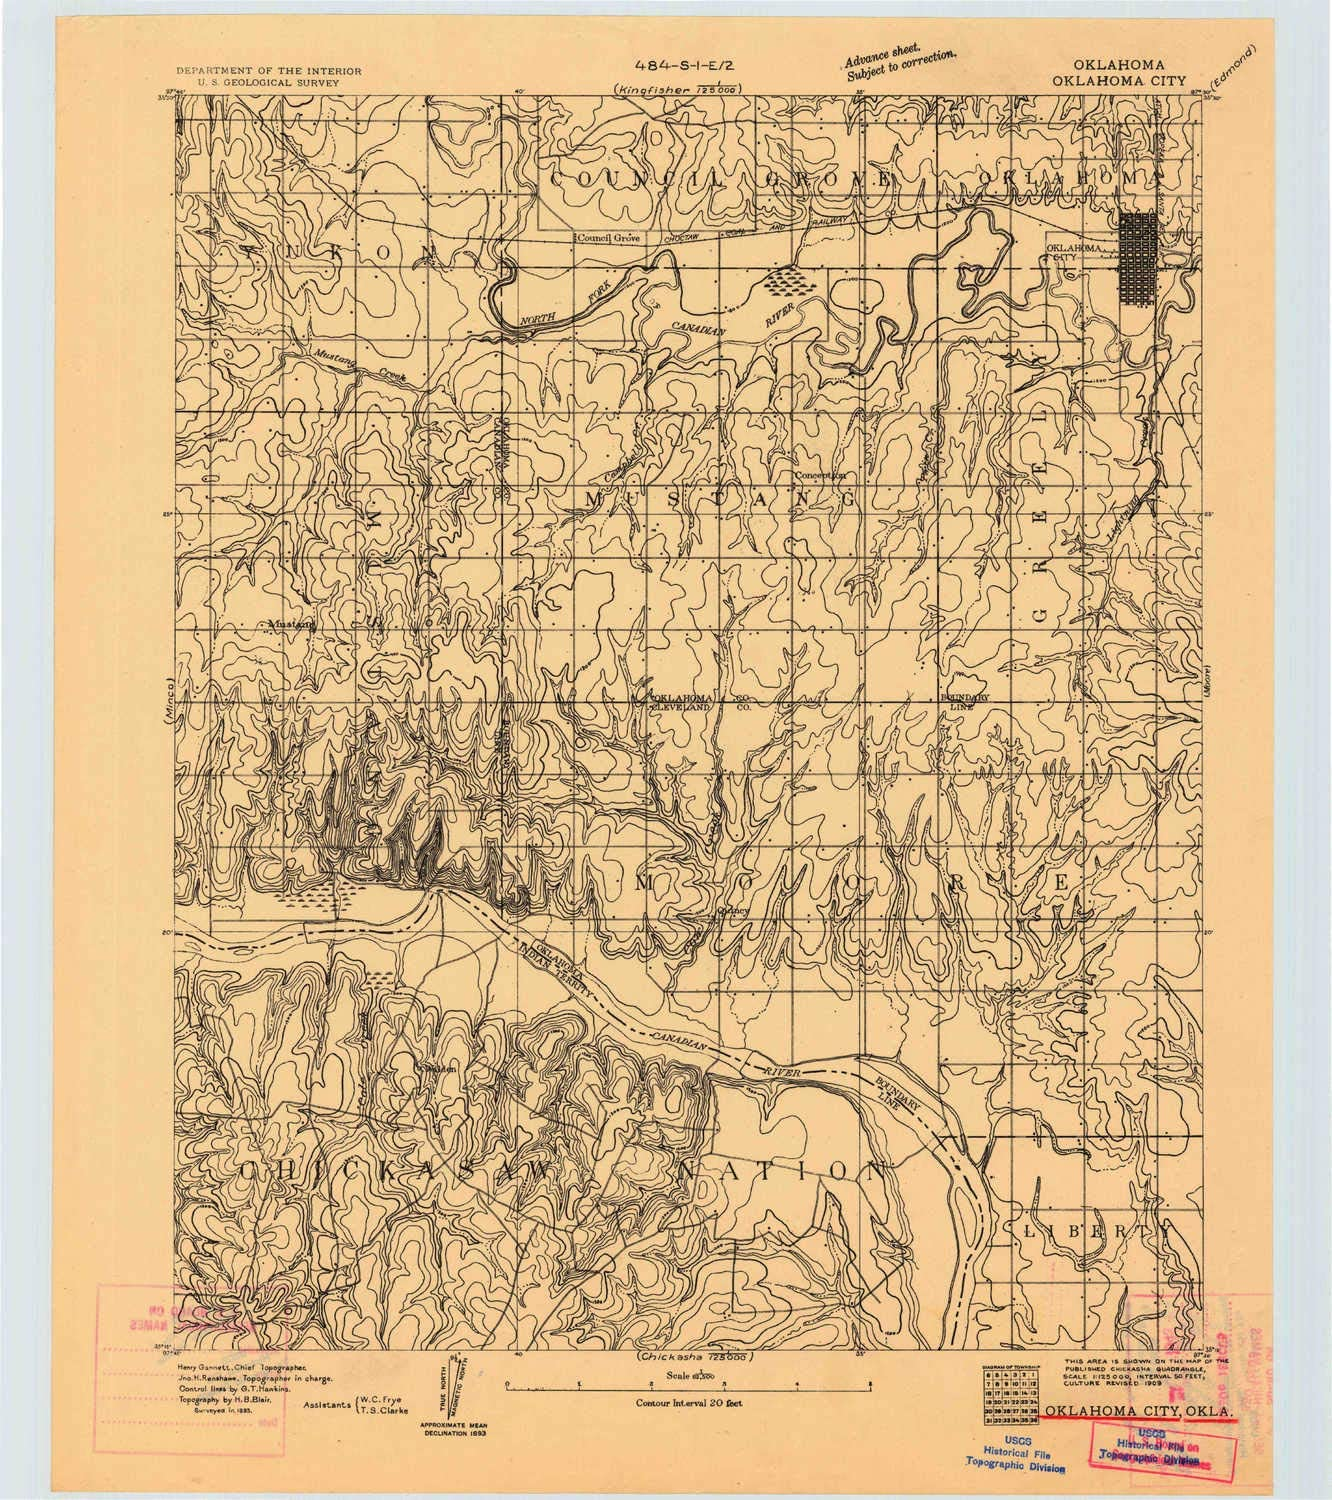 amazon com yellowmaps oklahoma city ok topo map 1 62500 scale 15 x 15 minute historical 1893 20 9 x 18 6 in paper sports outdoors yellowmaps oklahoma city ok topo map 1 62500 scale 15 x 15 minute historical 1893 20 9 x 18 6 in